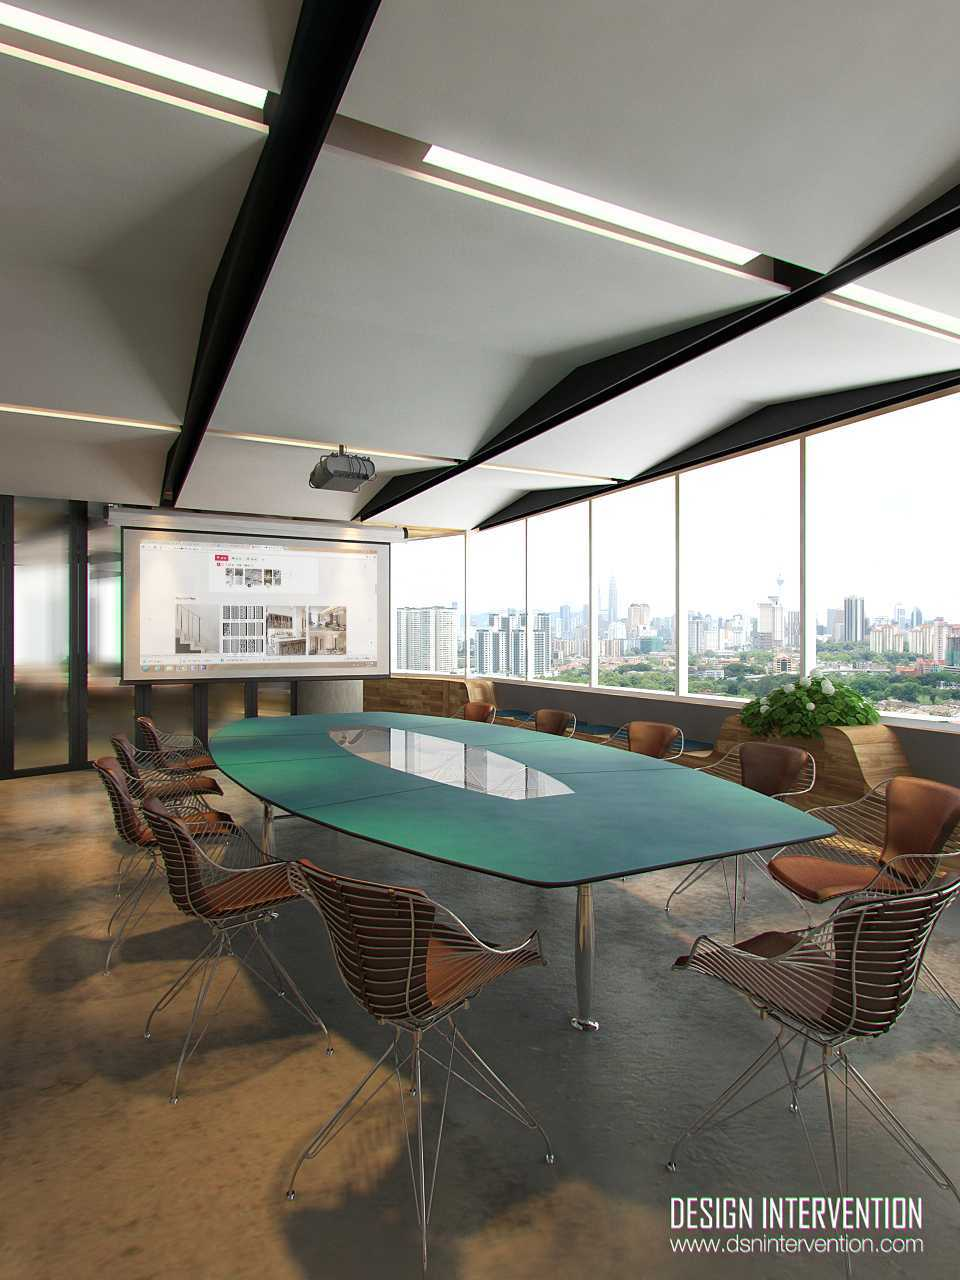 Design Intervention B - Office Concept Bsd Office Park Bsd Office Park Big-Meeting-View  13977